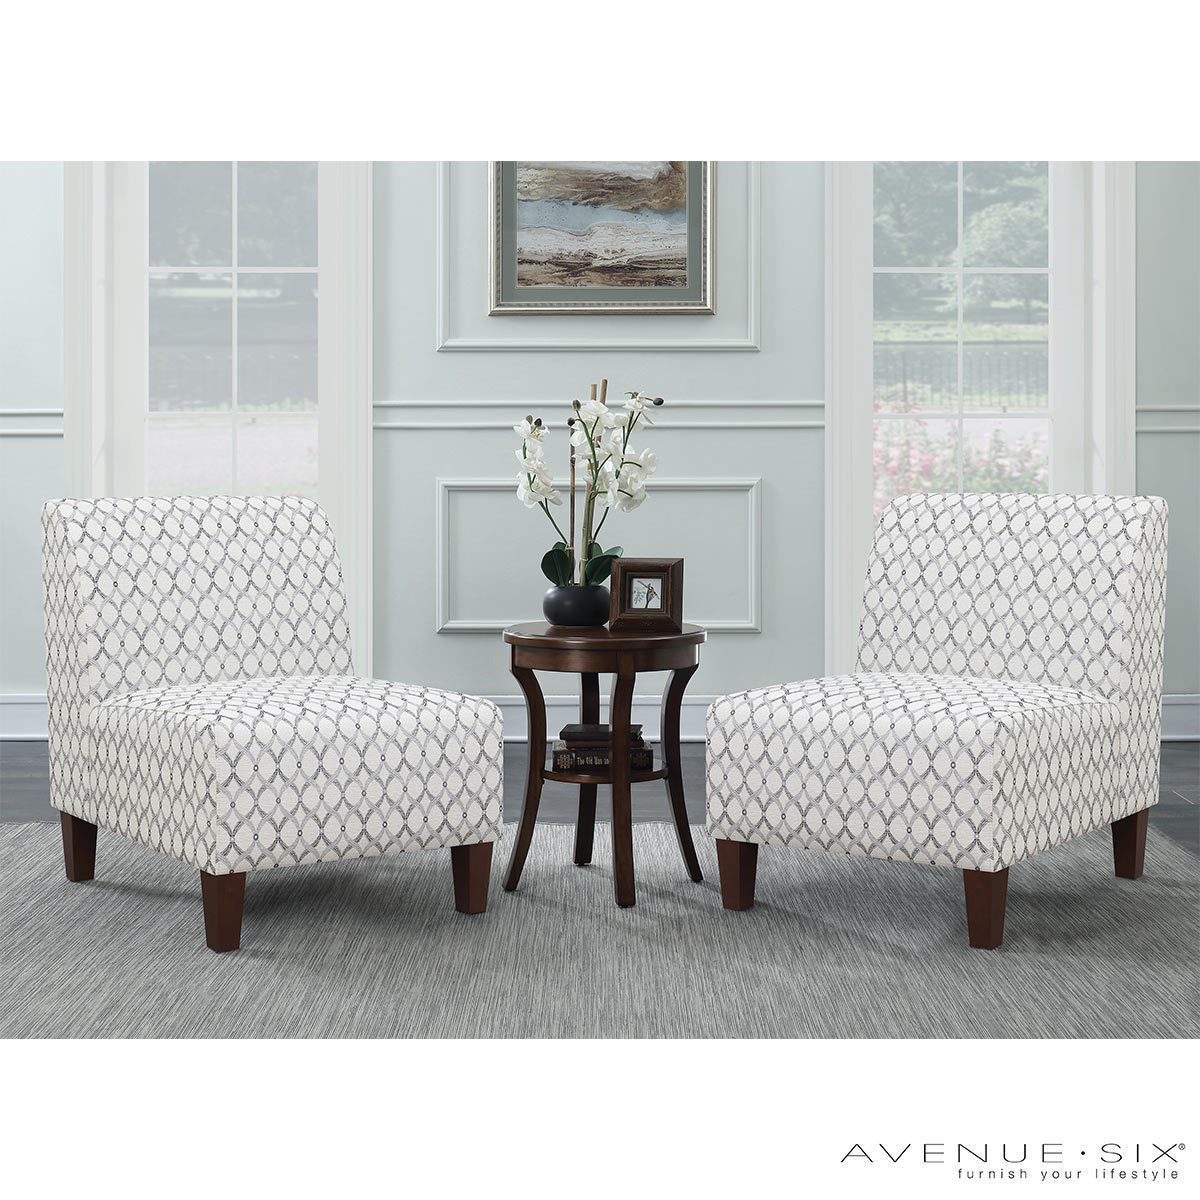 Accent Chairs At Costco Avenue Six 3 Piece Fabric Chair And Accent Table Set Costco Uk